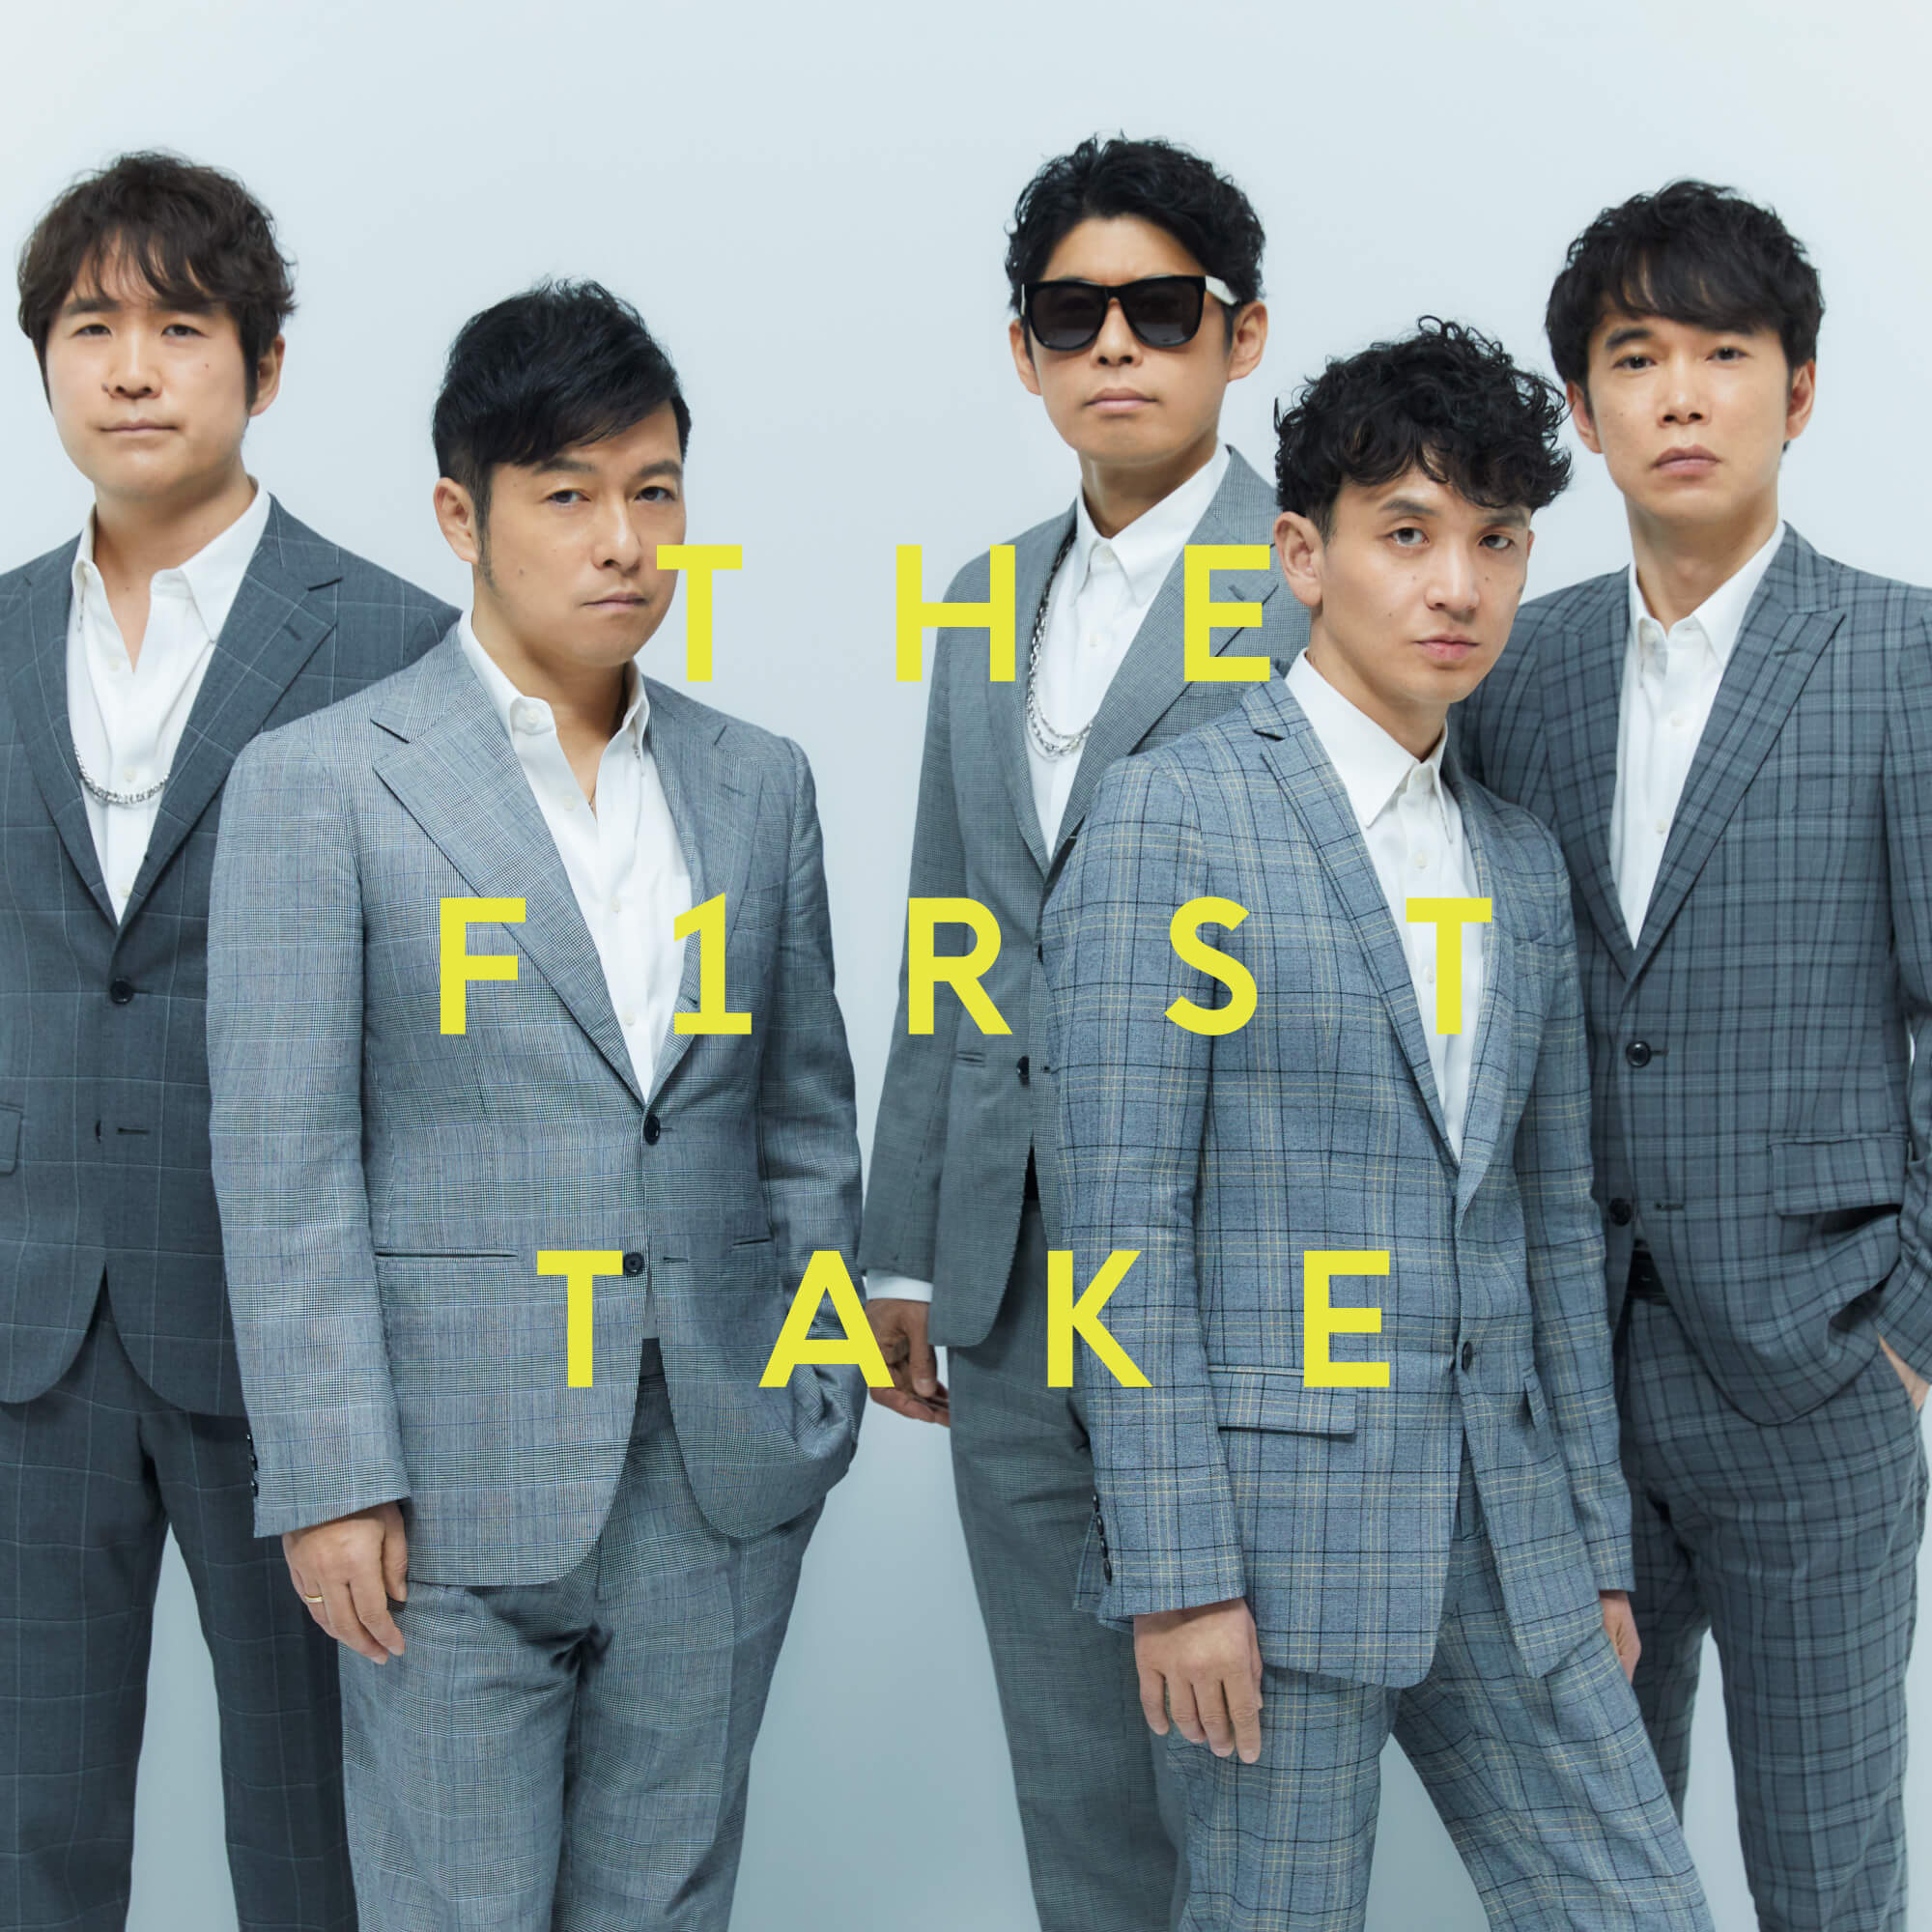 「THE FIRST TAKE」より、ゴスペラーズ「ひとり – From THE FIRST TAKE」「VOXers – From THE FIRST TAKE」の音源配信が決定